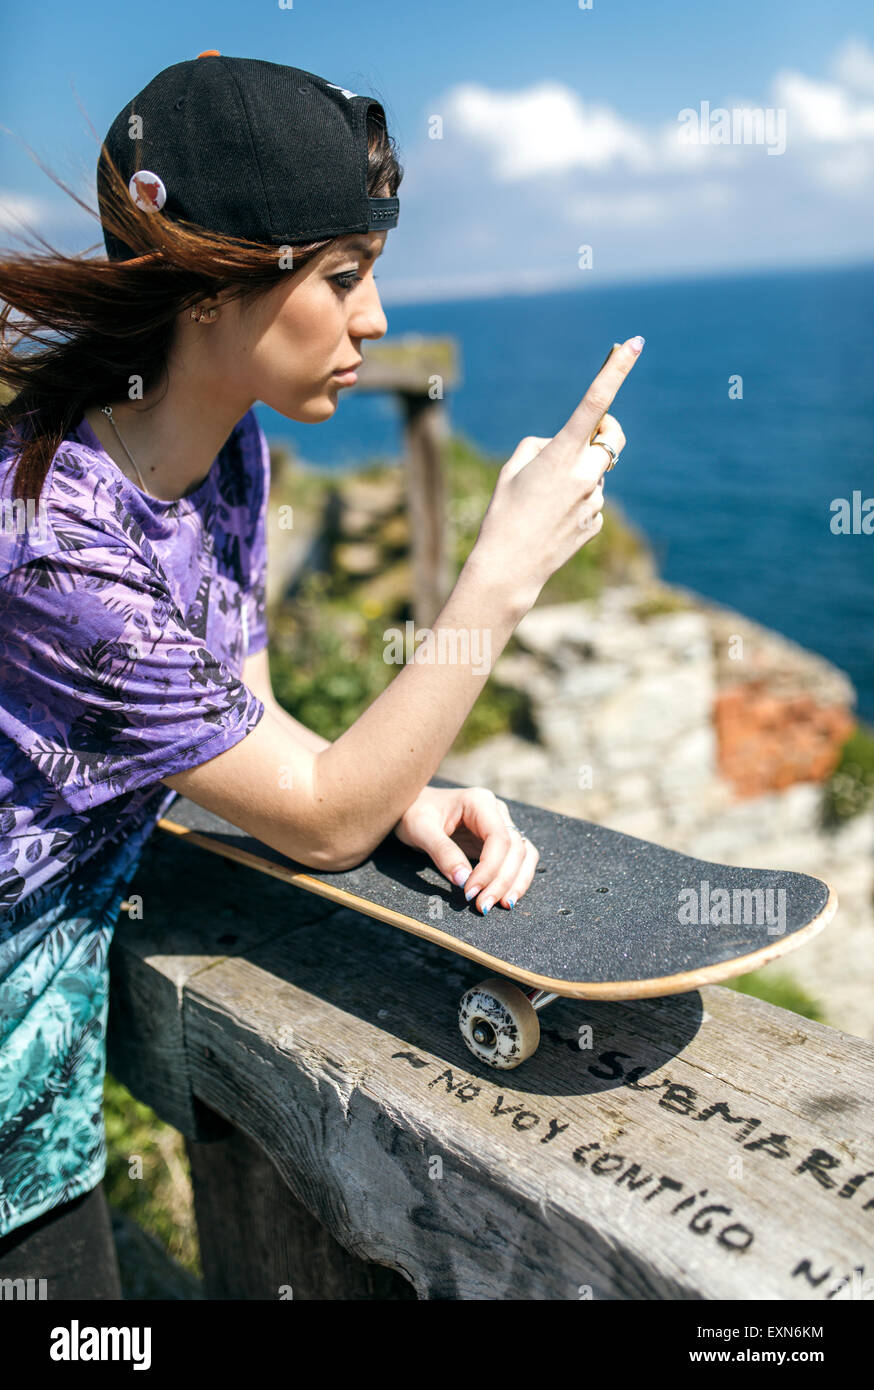 Spain, Gijon, female skate boarder reading text message - Stock Image